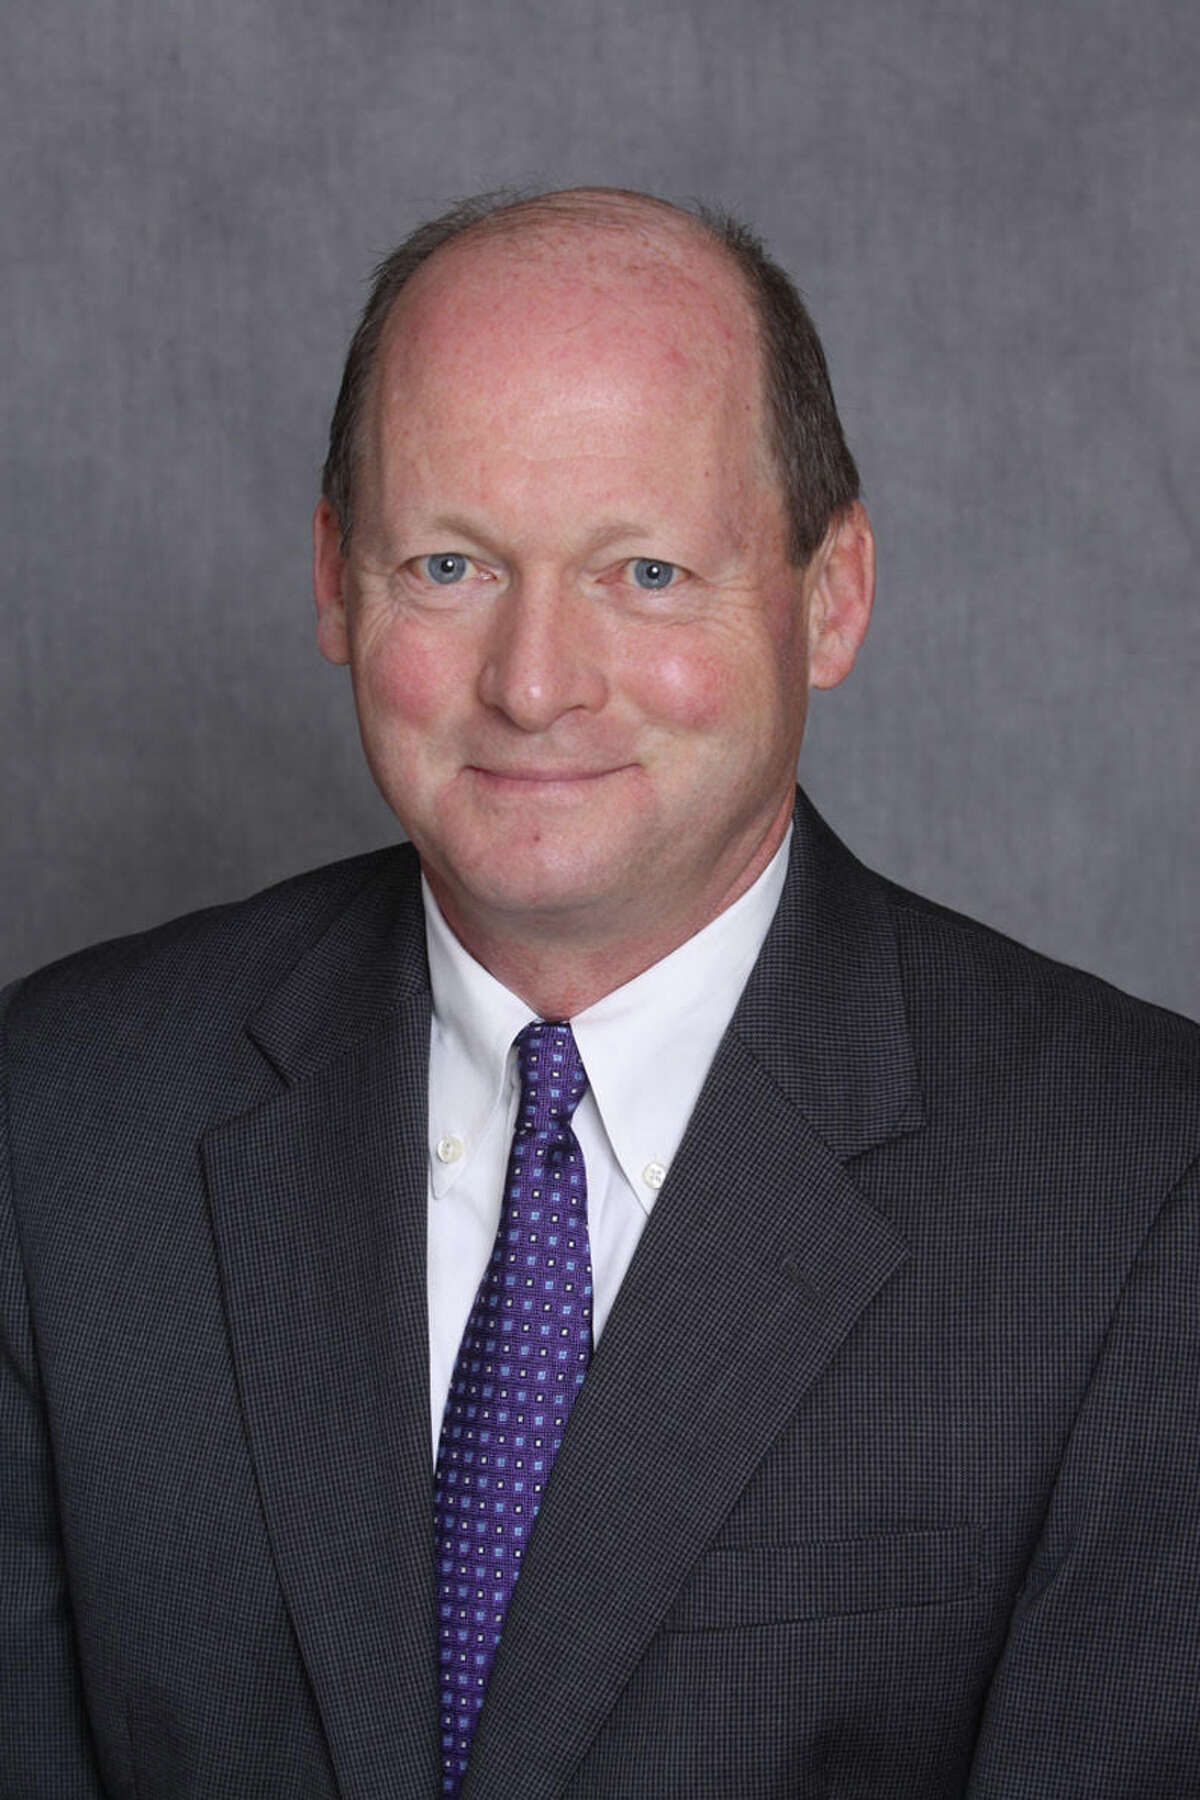 Brad Irwin of New Canaan, former president and CEO of Welch's, has been elected chairman of the United States Board of Trustees for Save the Children. Brad Irwin